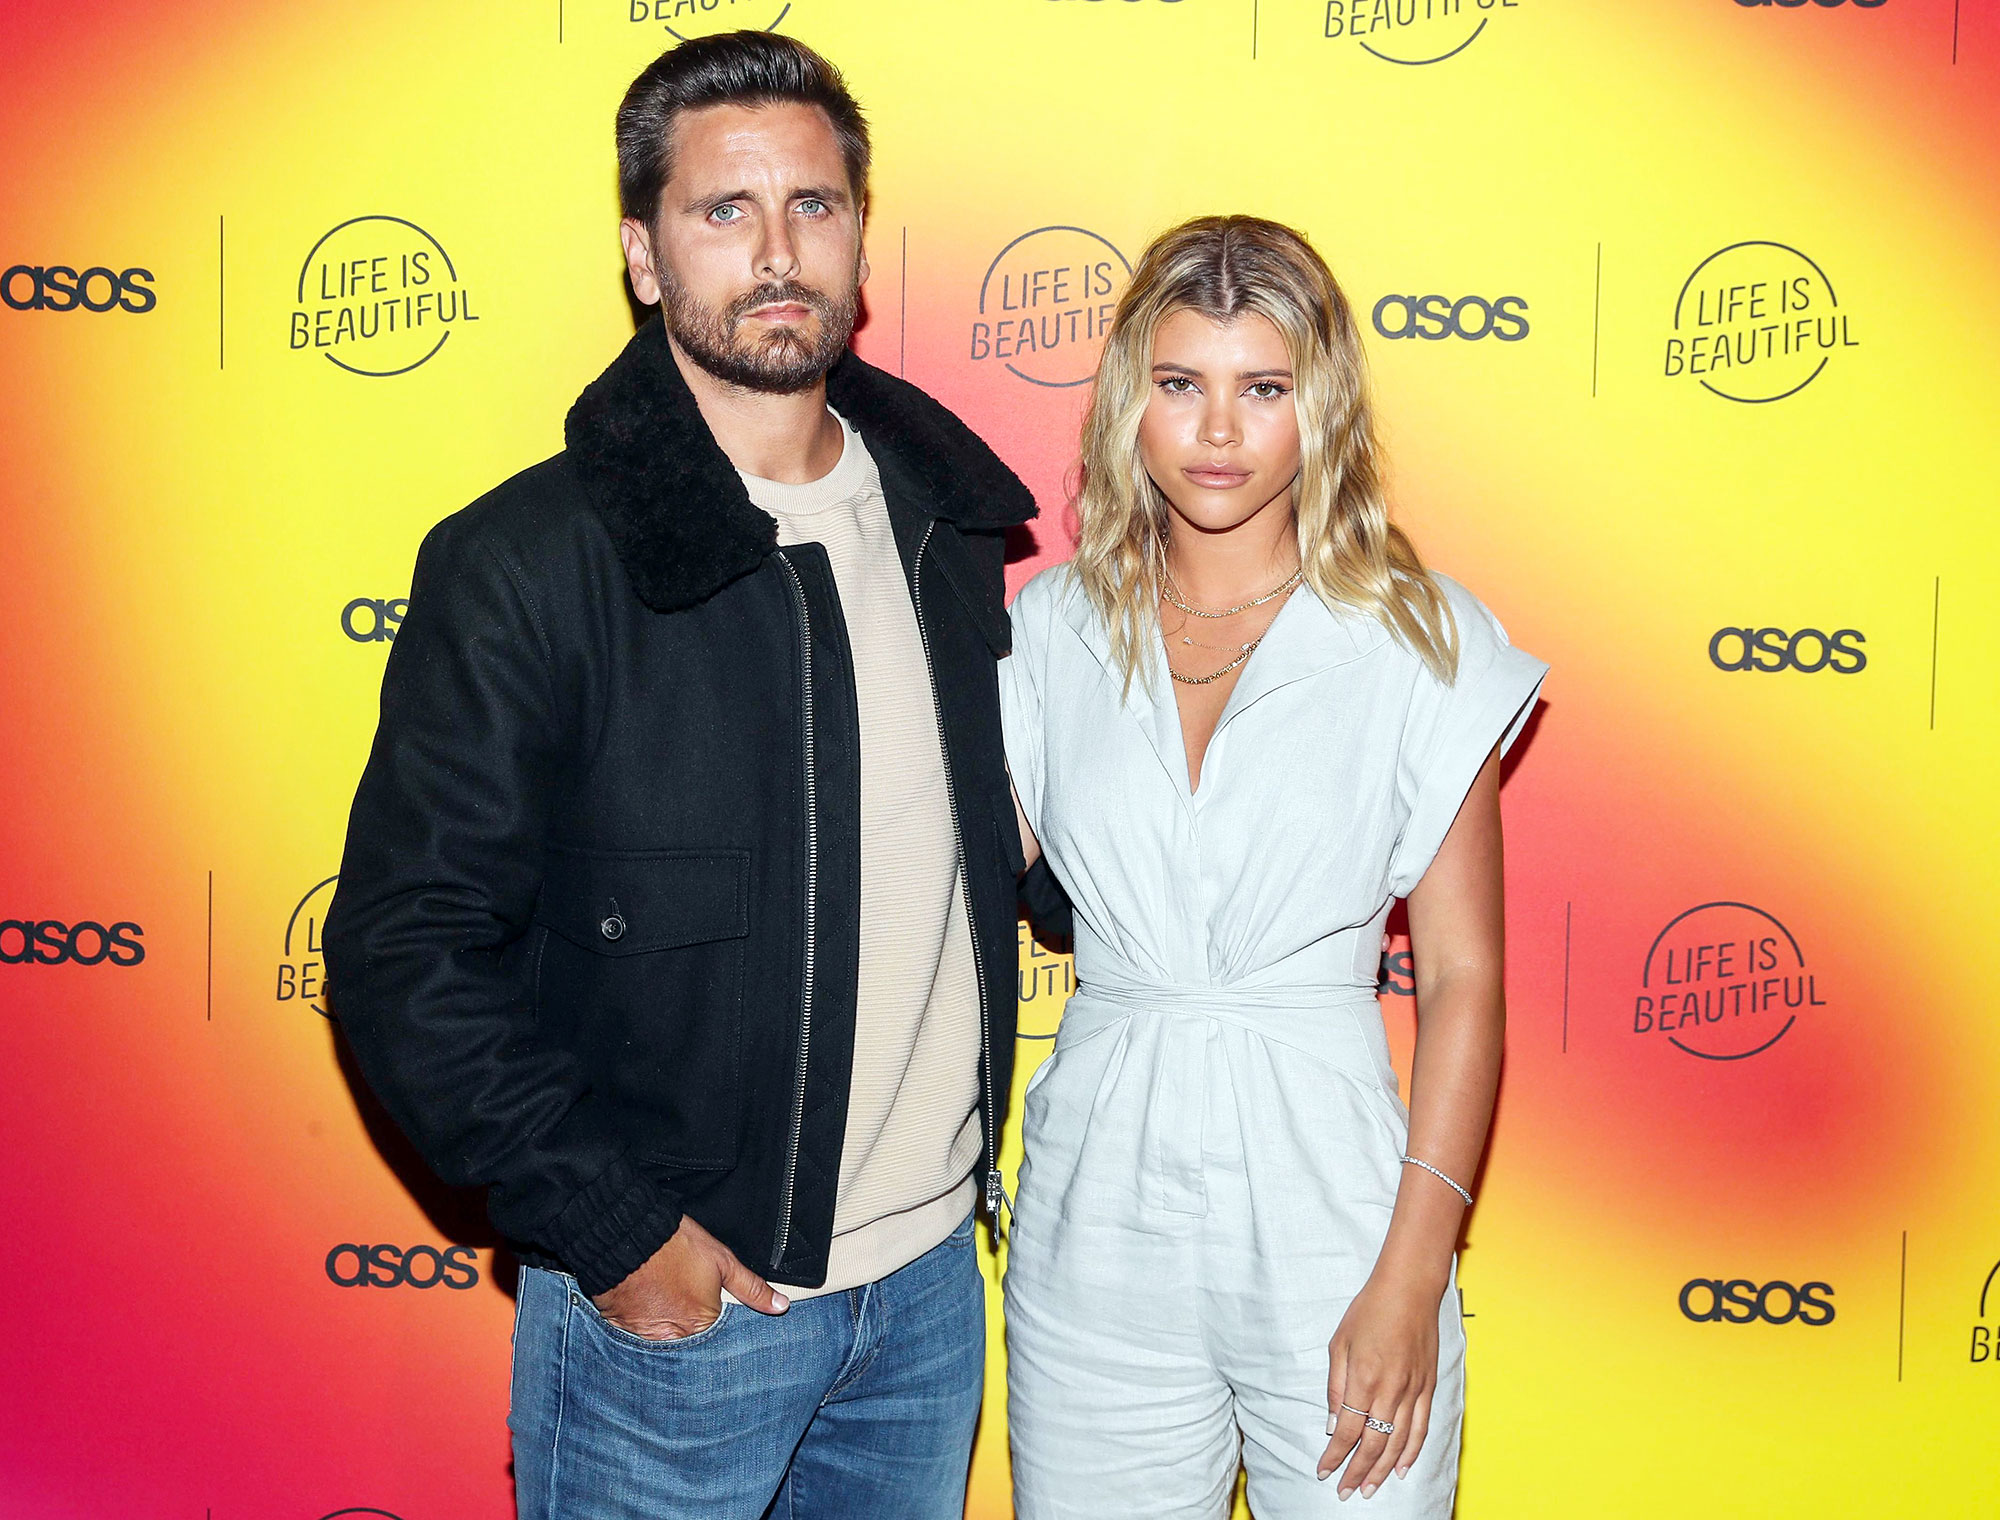 Scott Disick and Sofia Richie Are on a Break After Rehab Stint